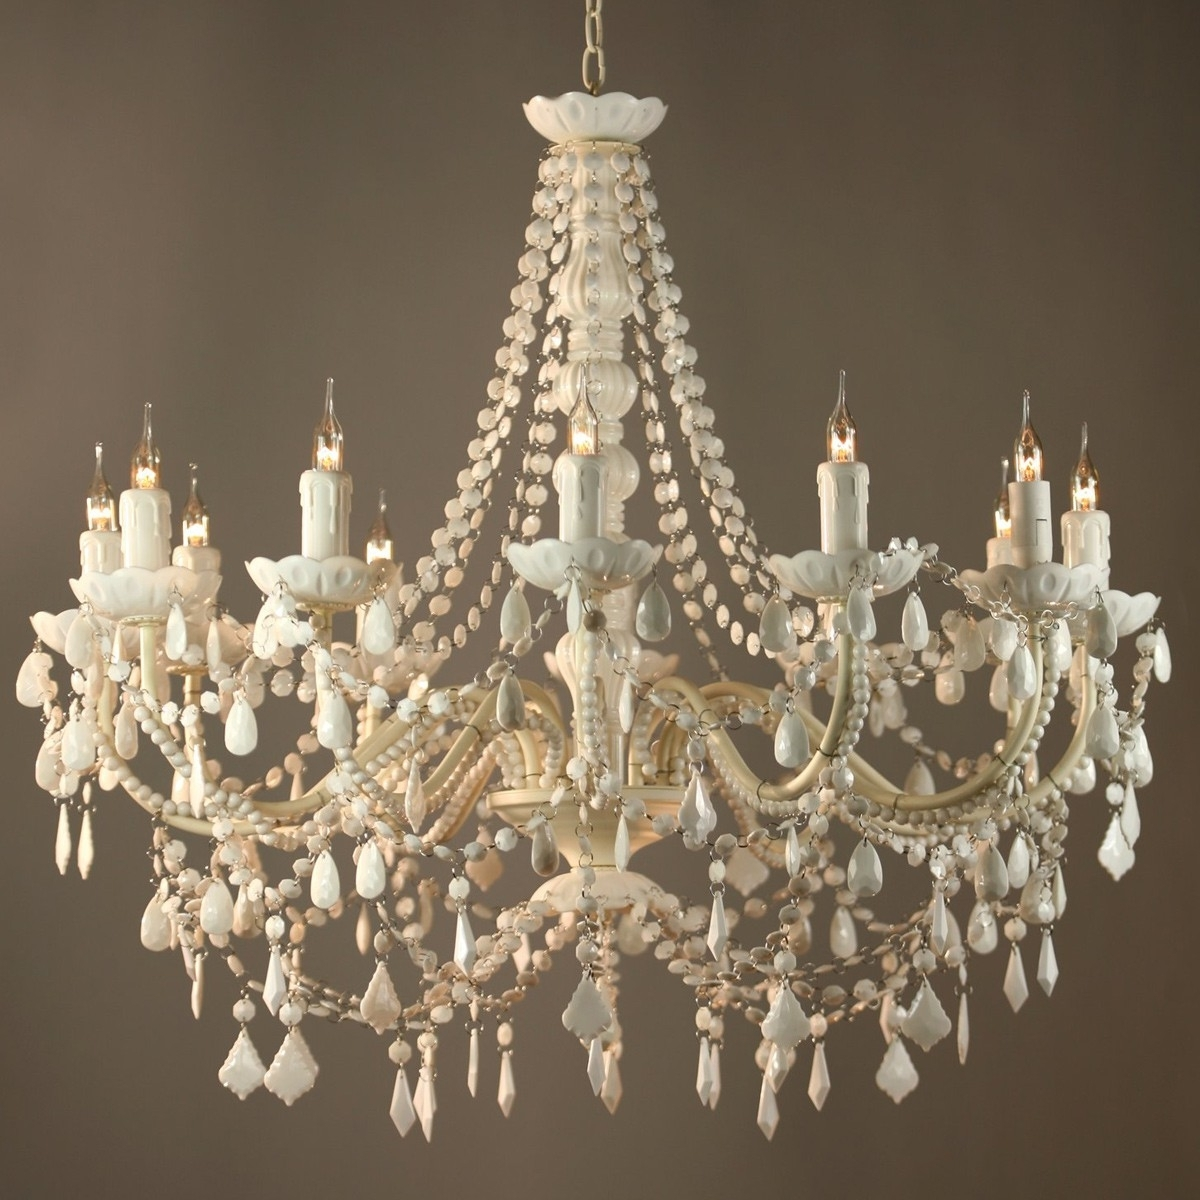 Antique Chandeliers For Your House Inside Most Recently Released Antique Looking Chandeliers (View 2 of 15)